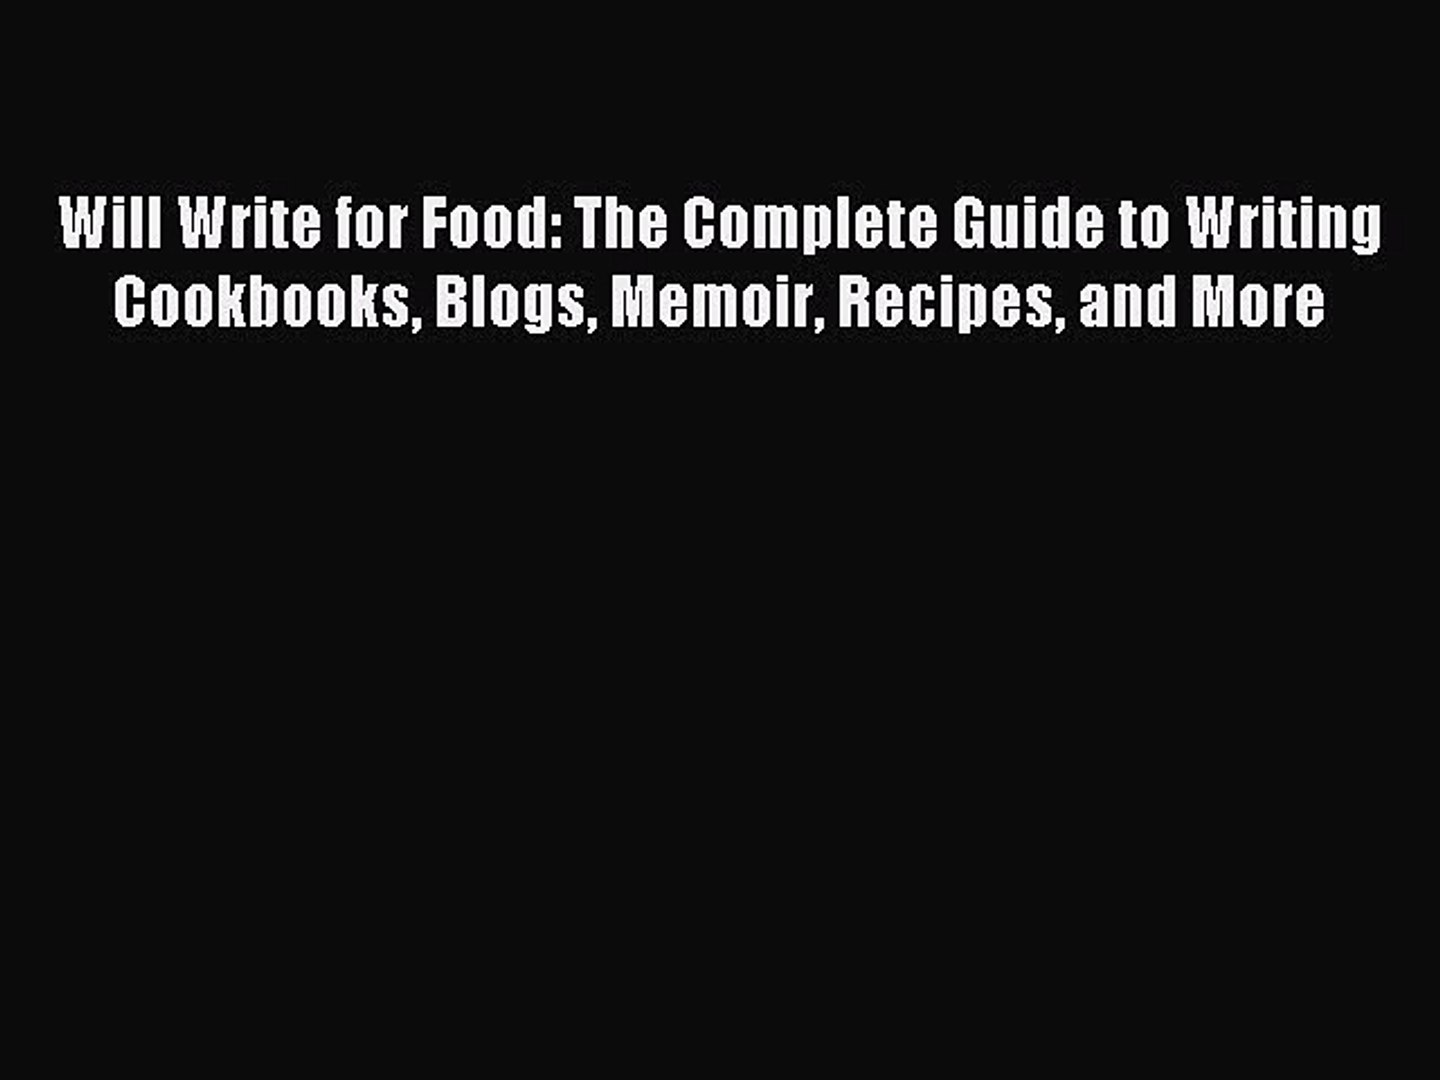 Read Will Write for Food: The Complete Guide to Writing Cookbooks Blogs Memoir Recipes and